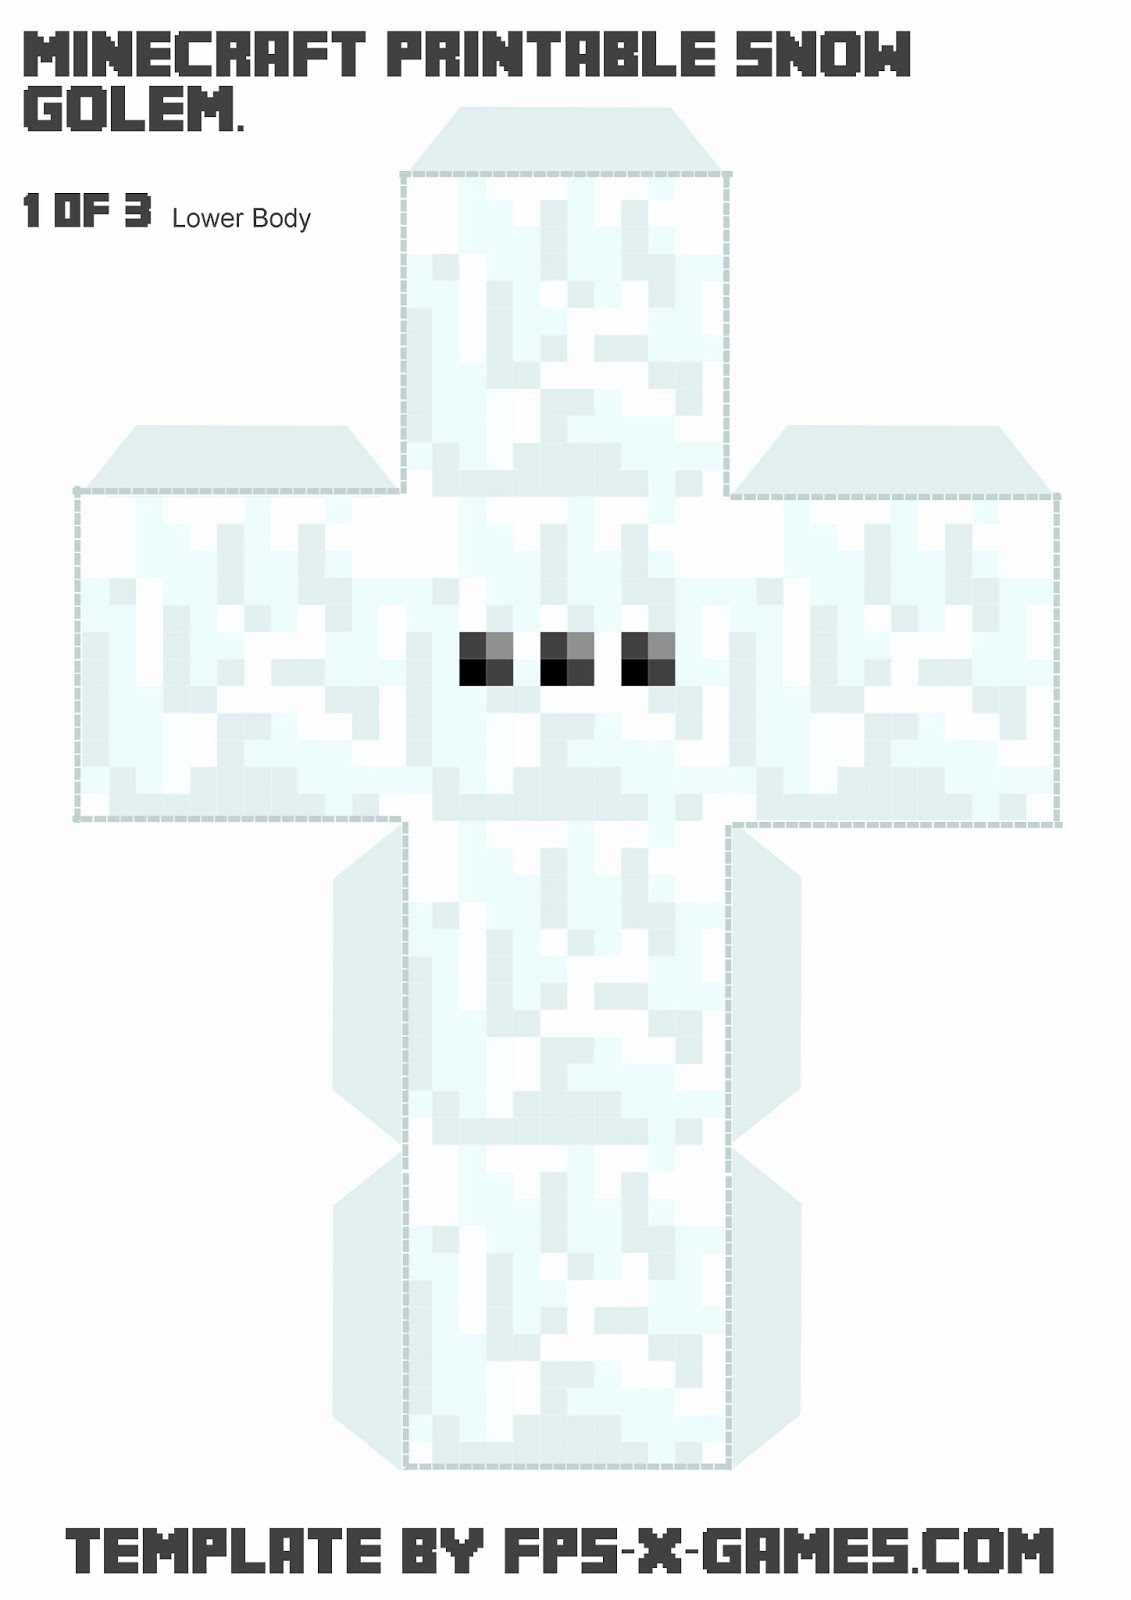 Minecraft Snow Golem - Printable Papercraft Template 1 of 3